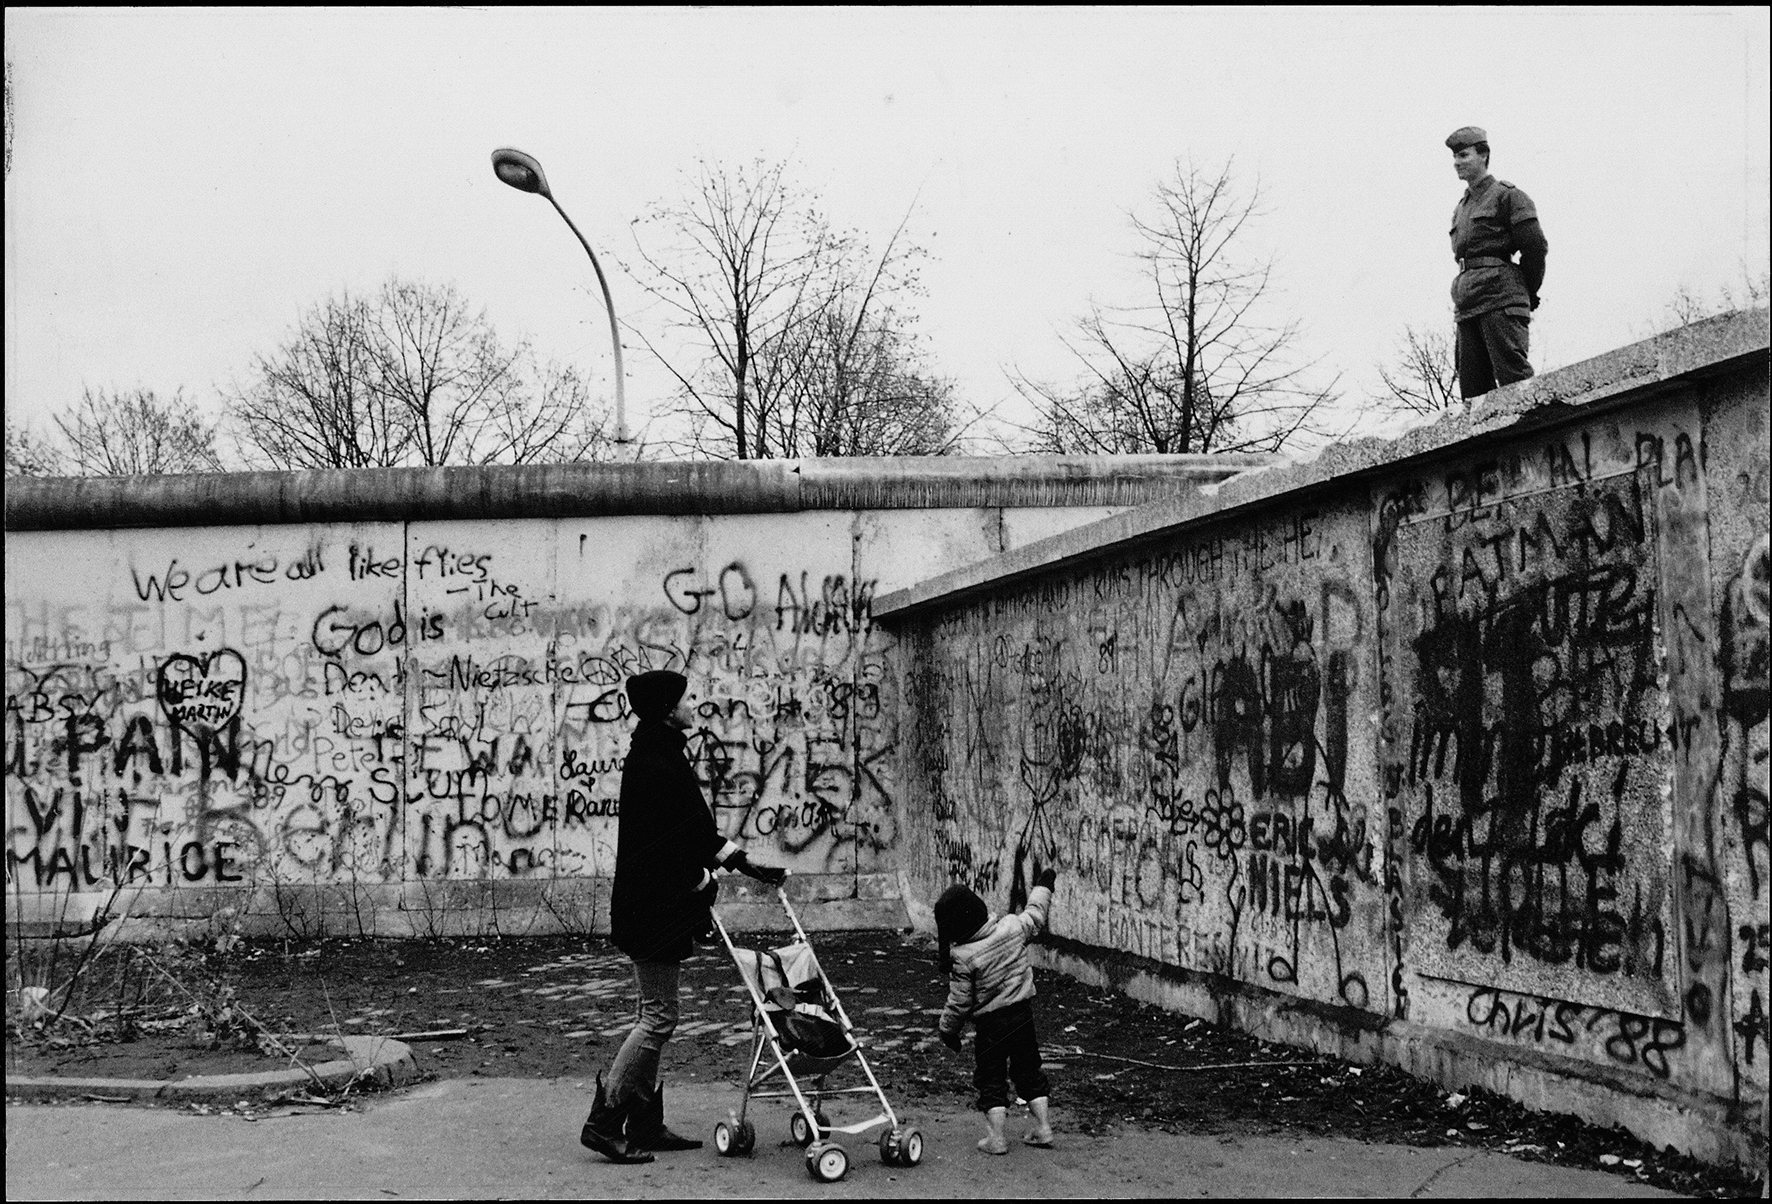 east german leader during berlin wall